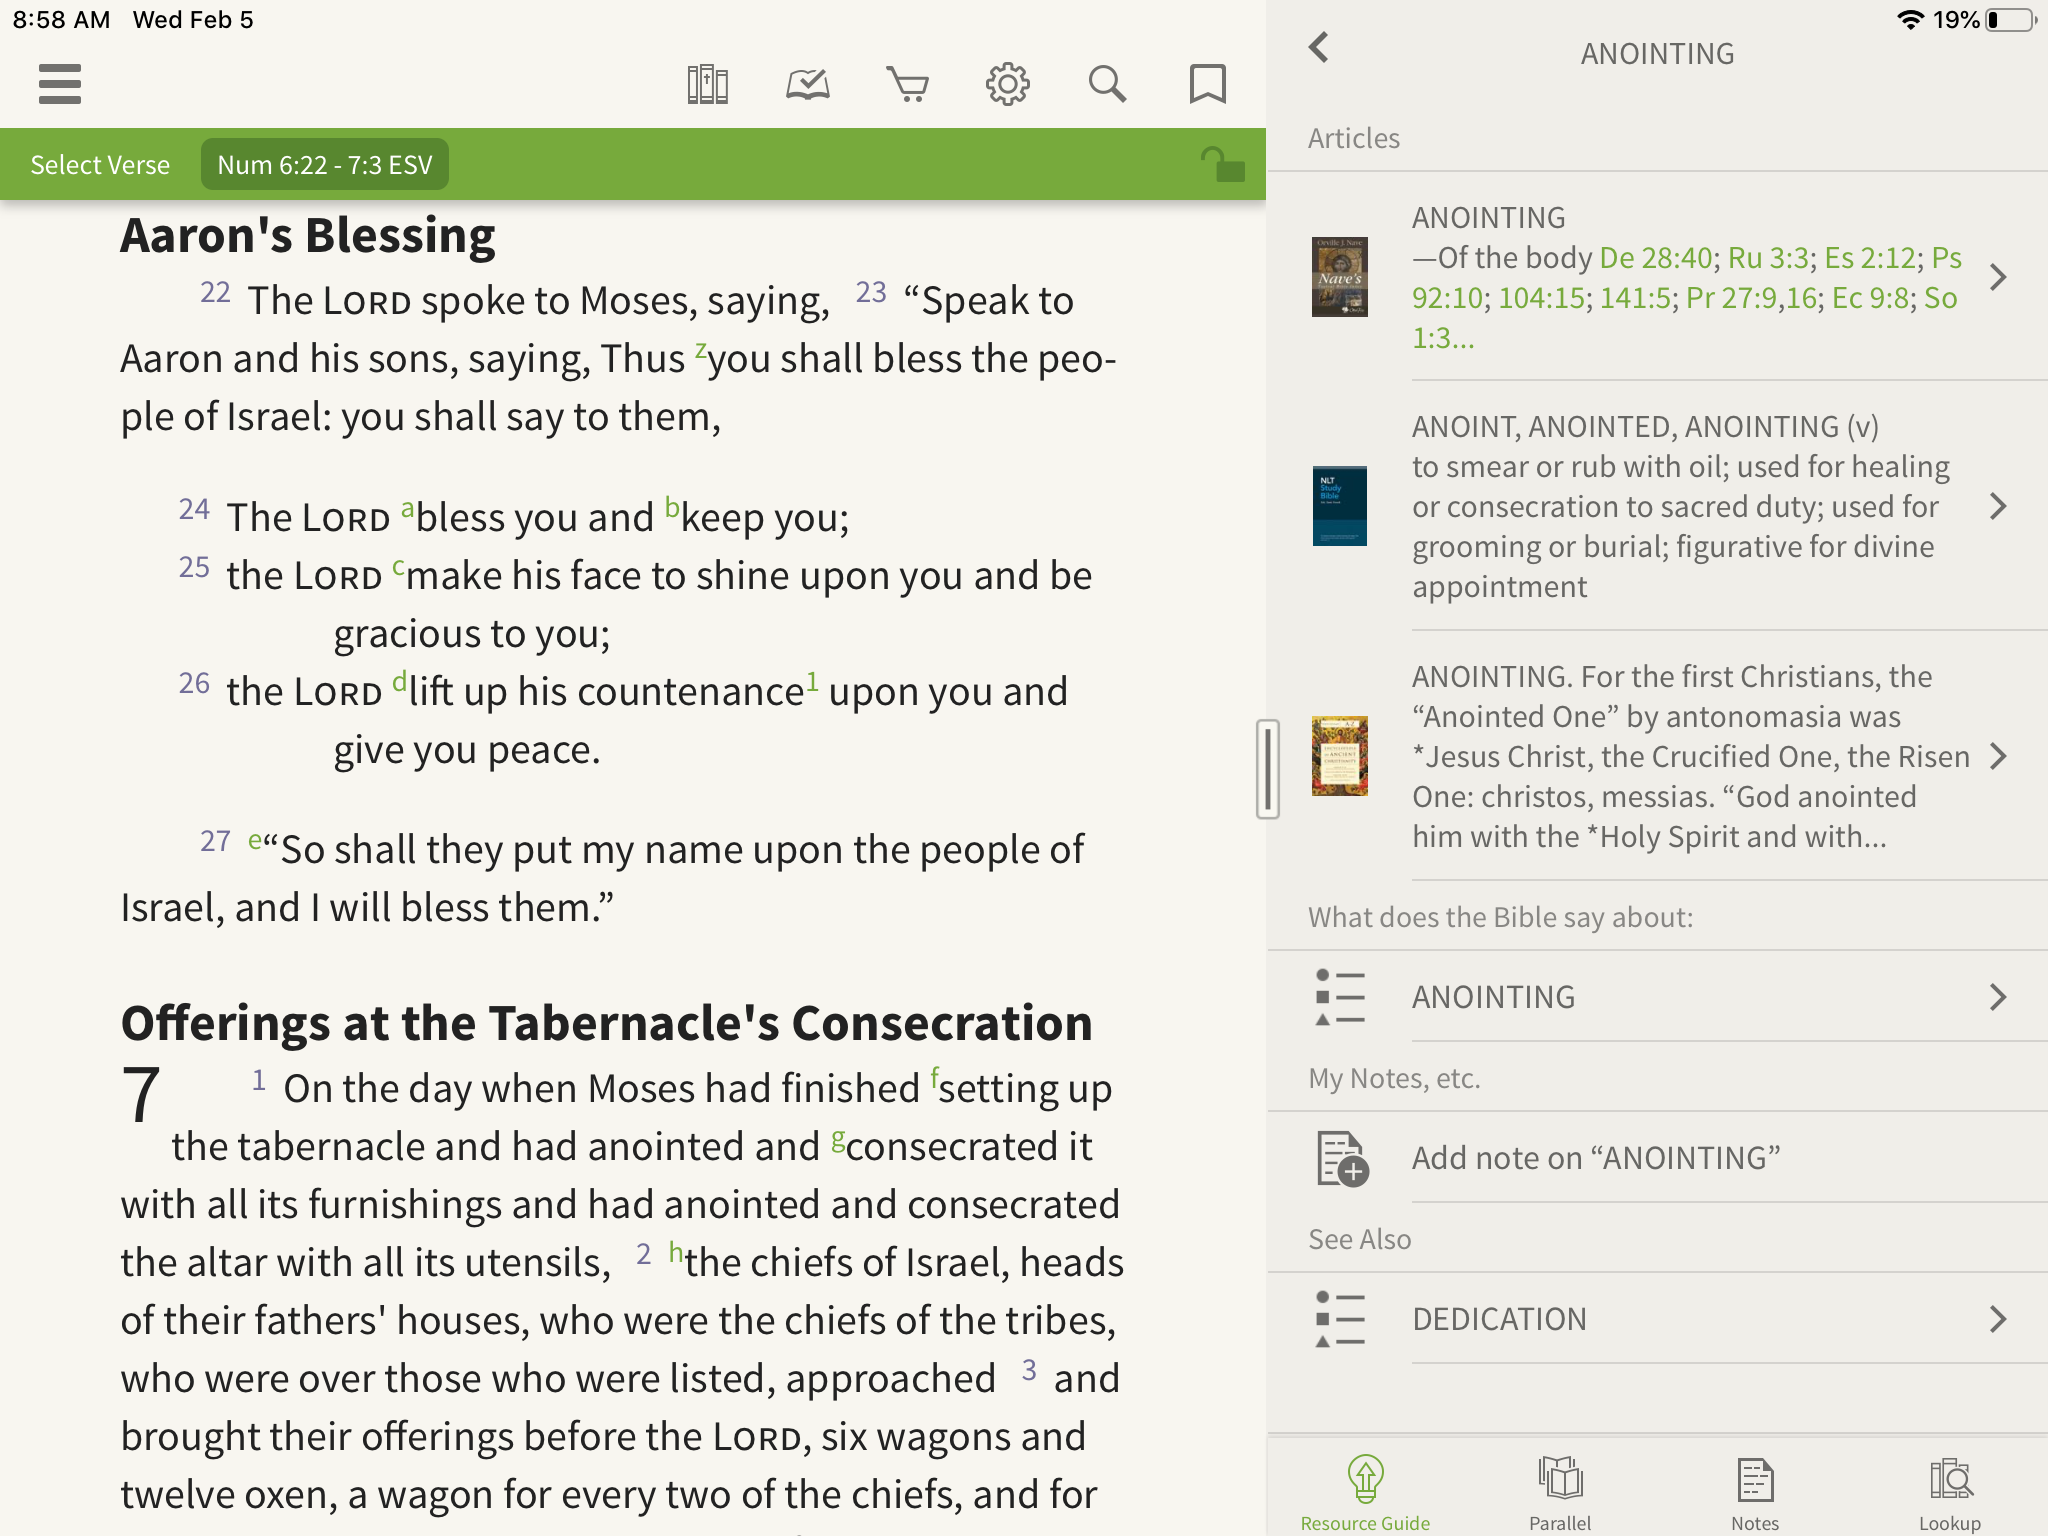 Olive Tree Bible App open to articles on anointing